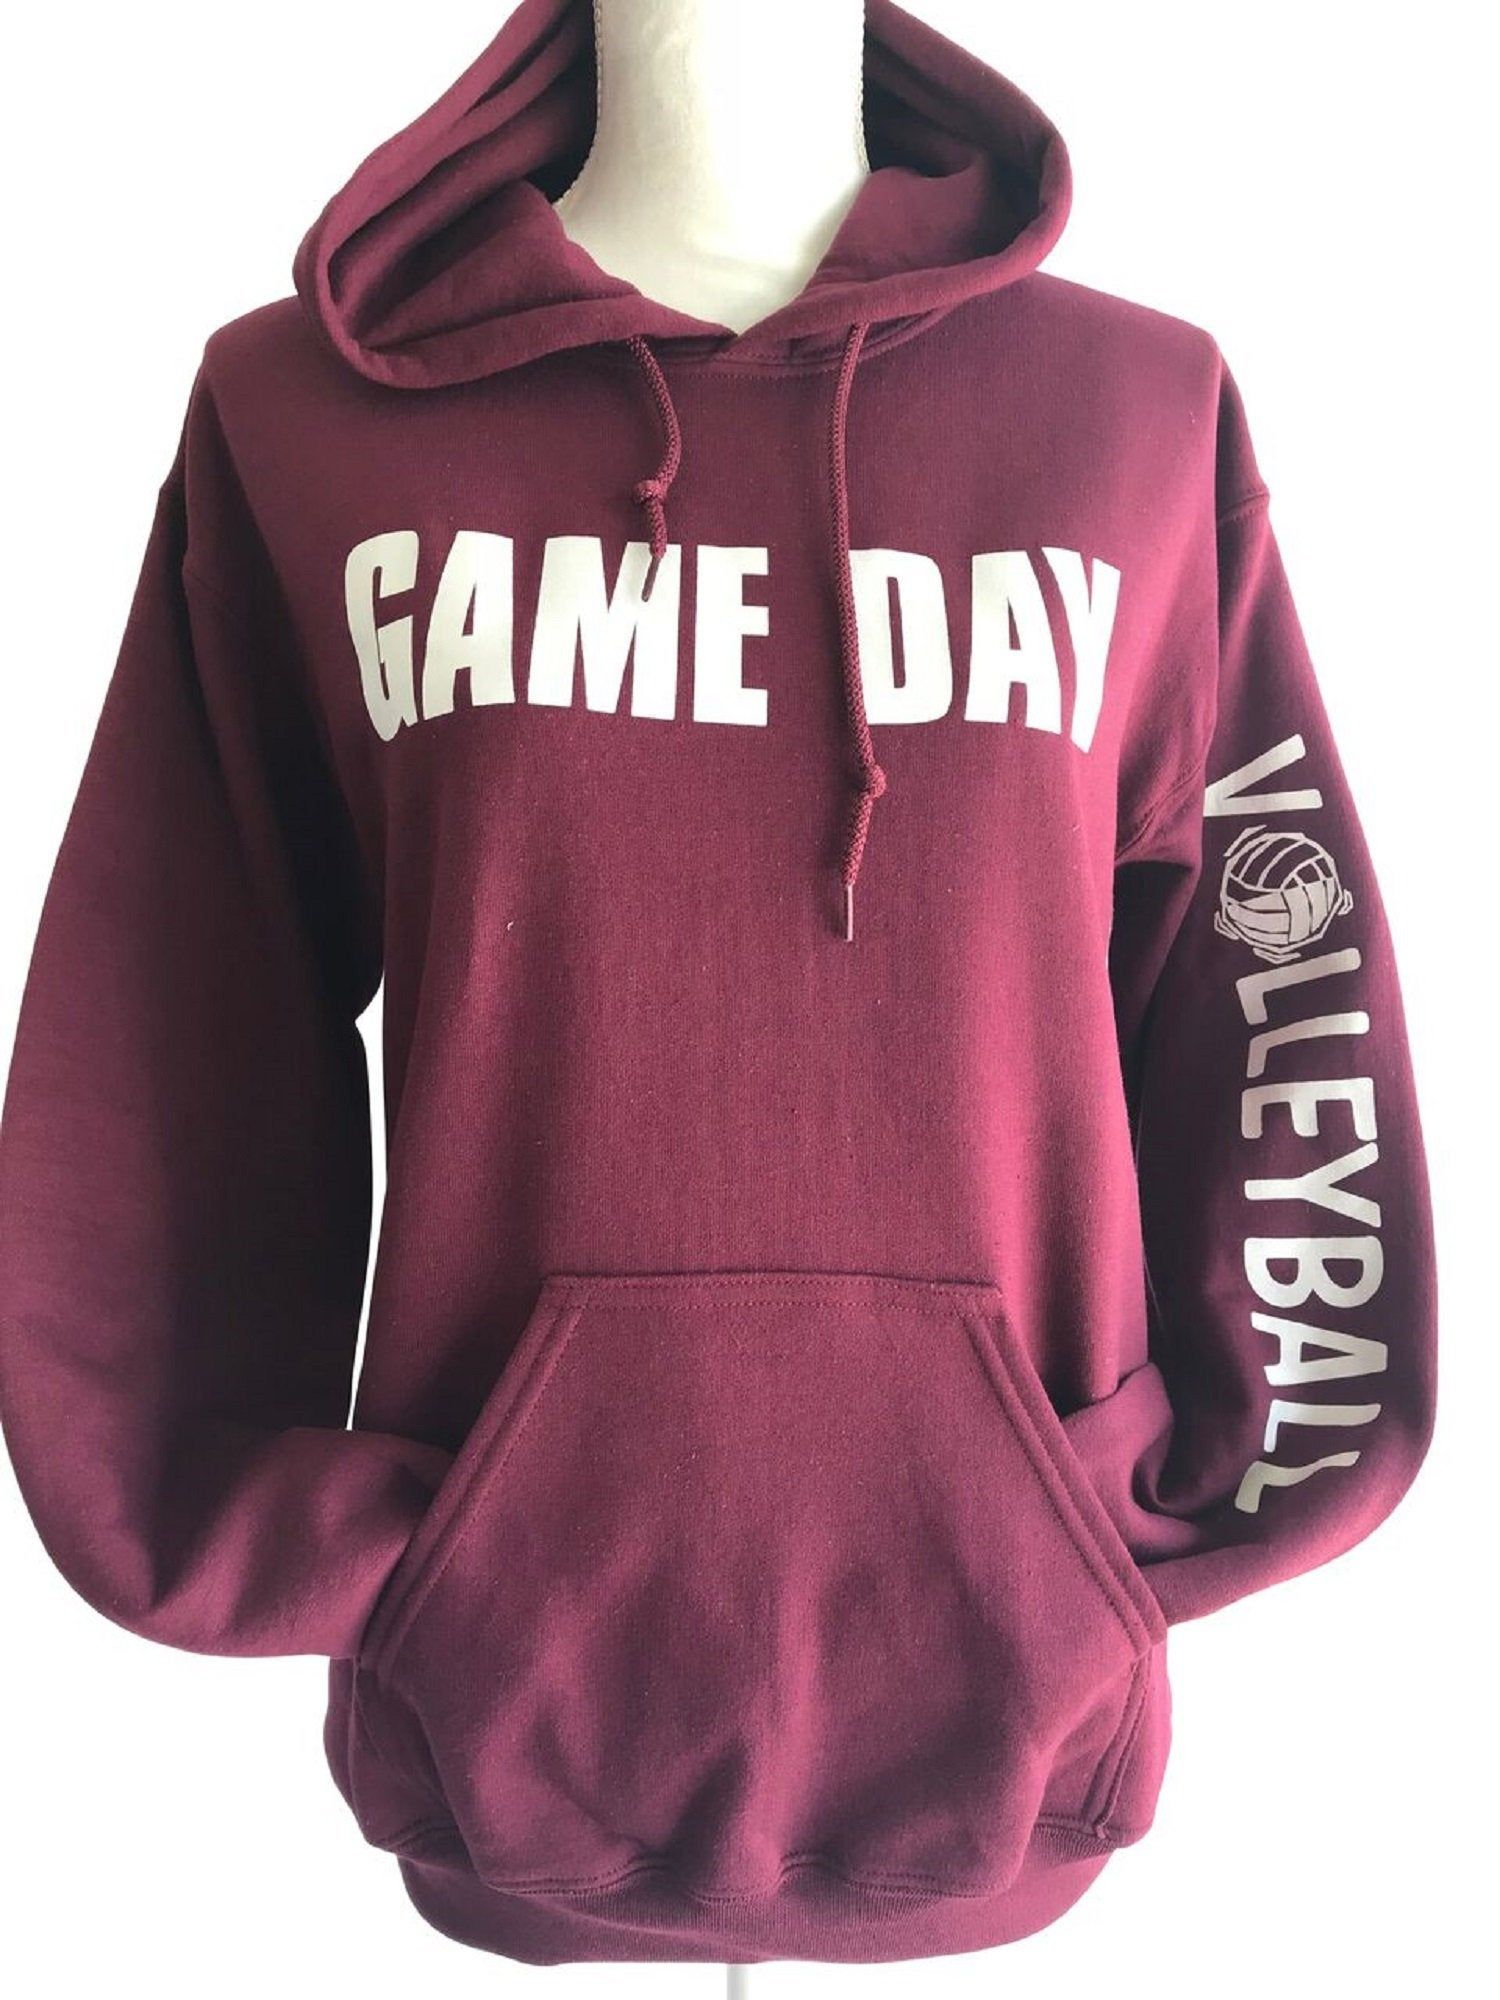 Game Day Volleyball Hooded Sweatshirt Withvolleyball Headband And Bracelet Sweatshirts Volleyball Sweatshirts Volleyball Shirts